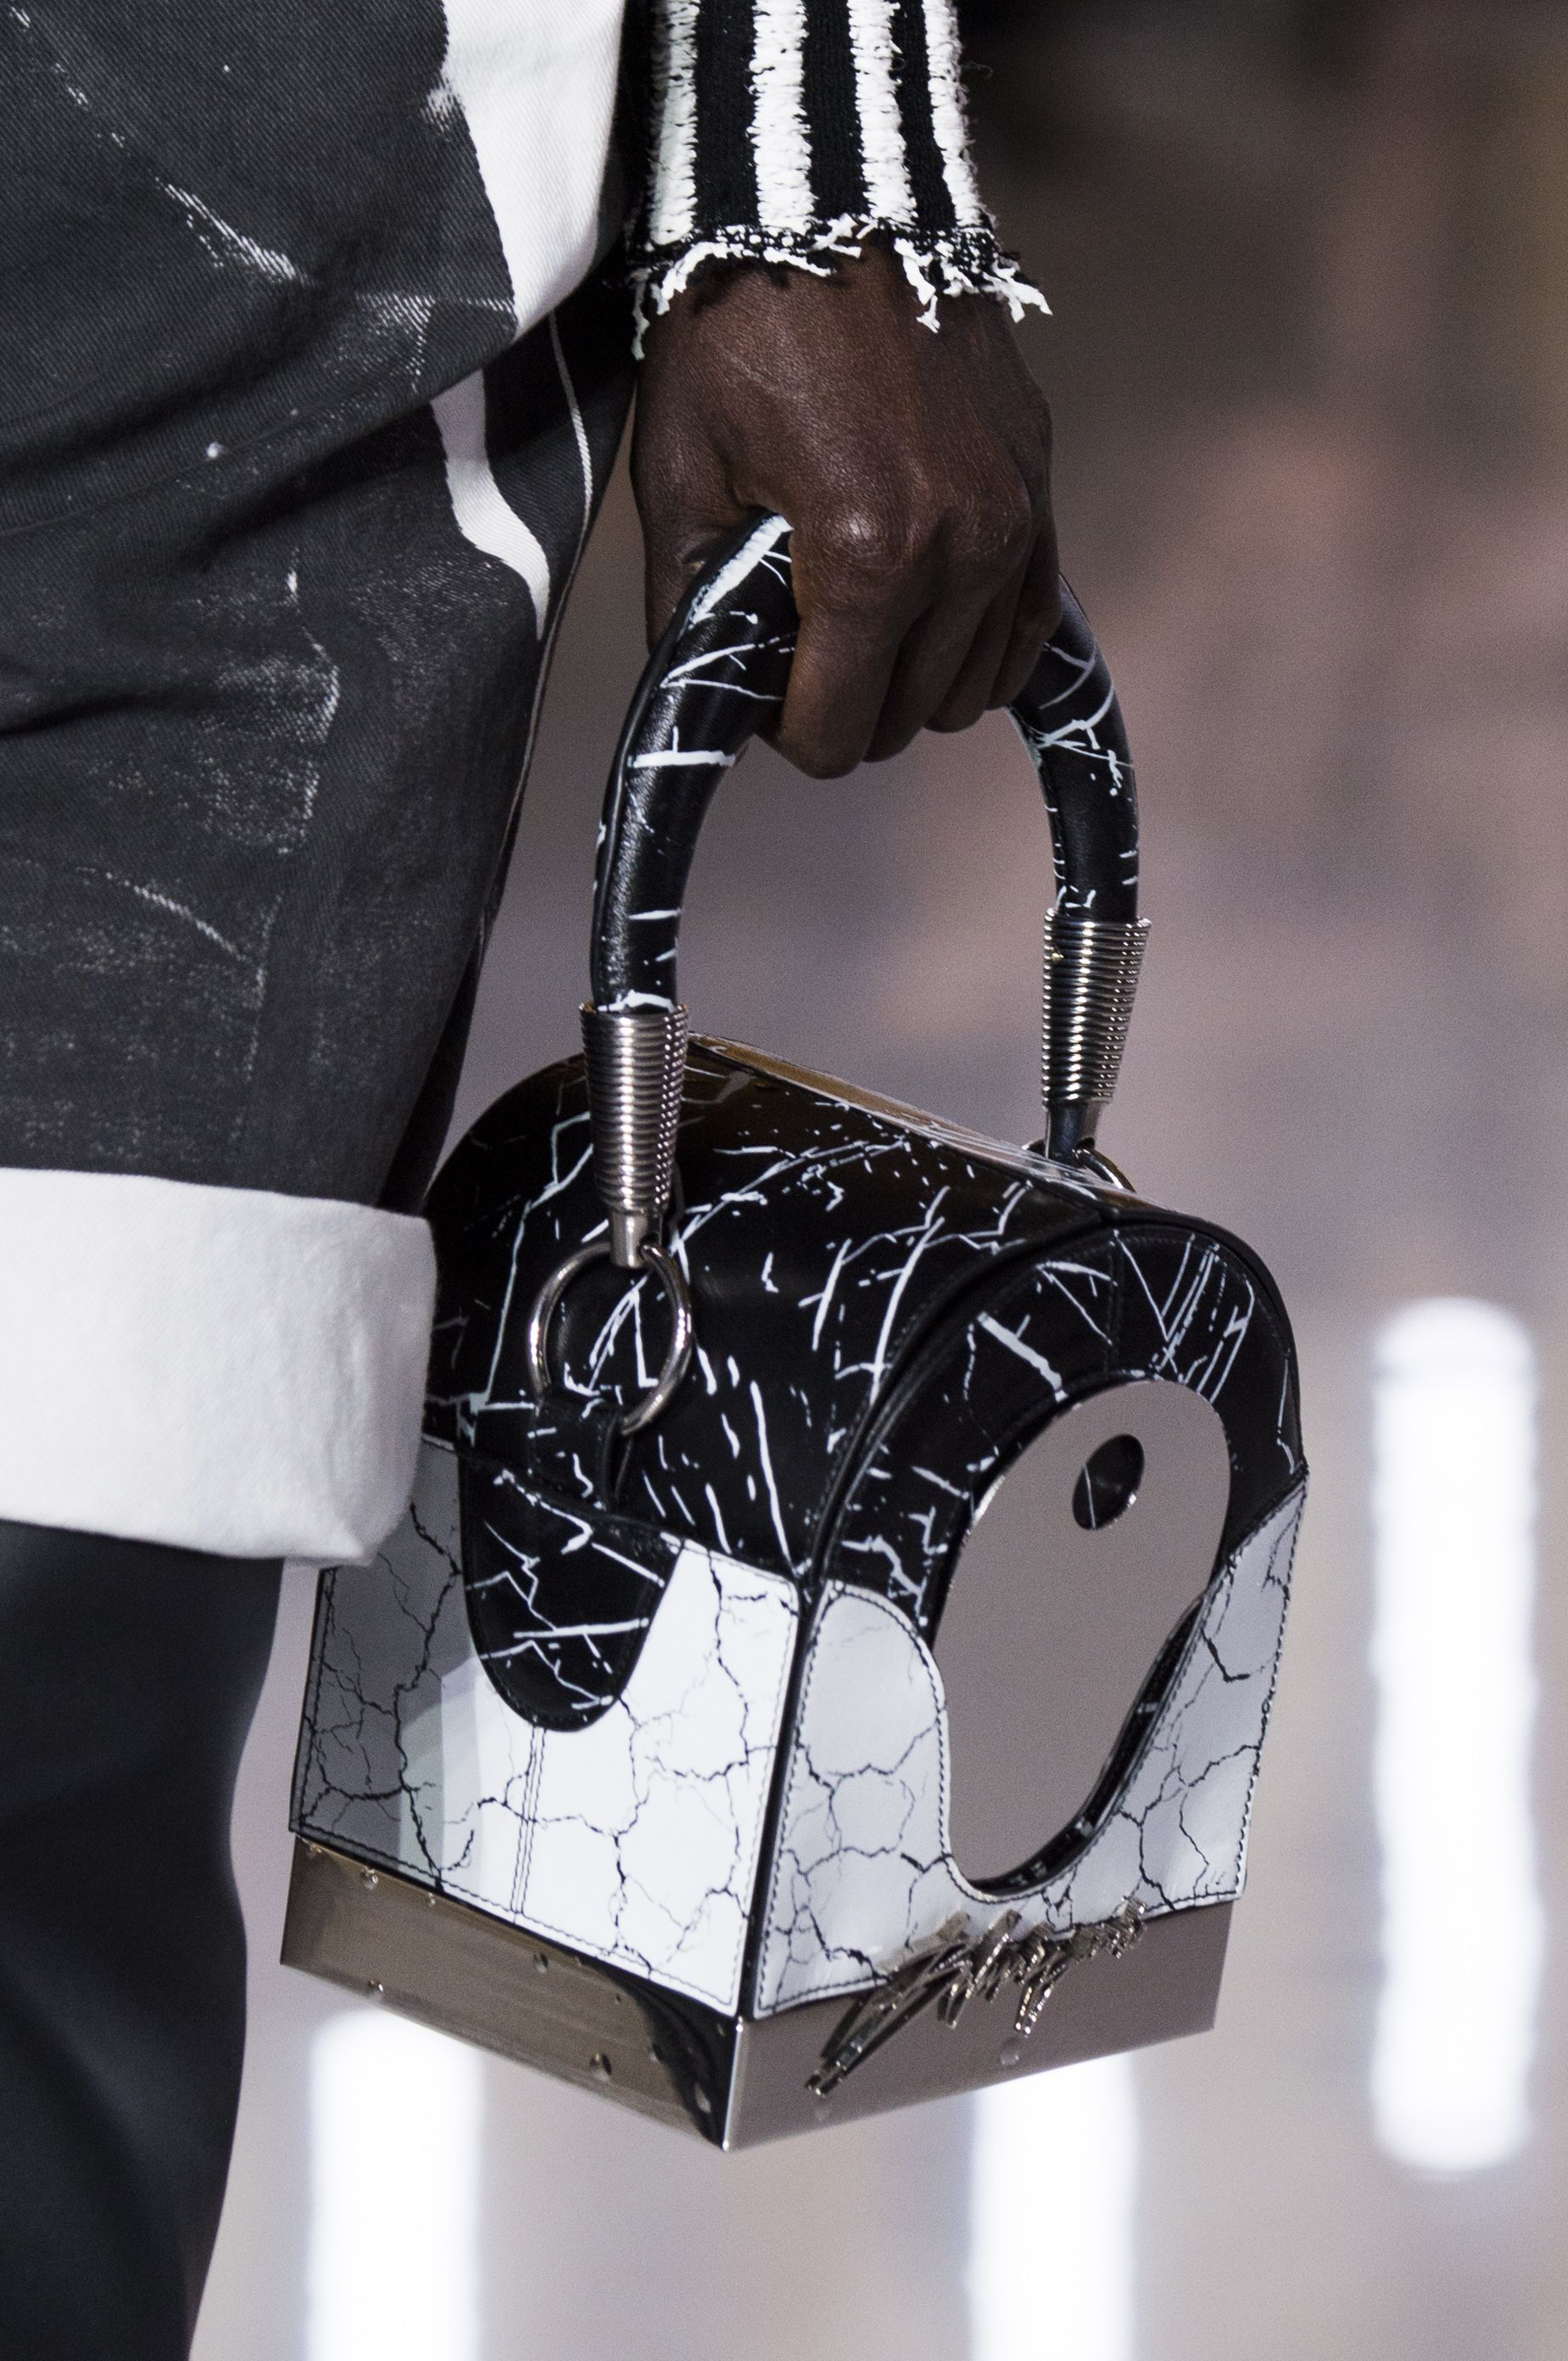 Best Spring 2019 Bags On The Runway - Spring 2019 Bag Trends 4570846a16